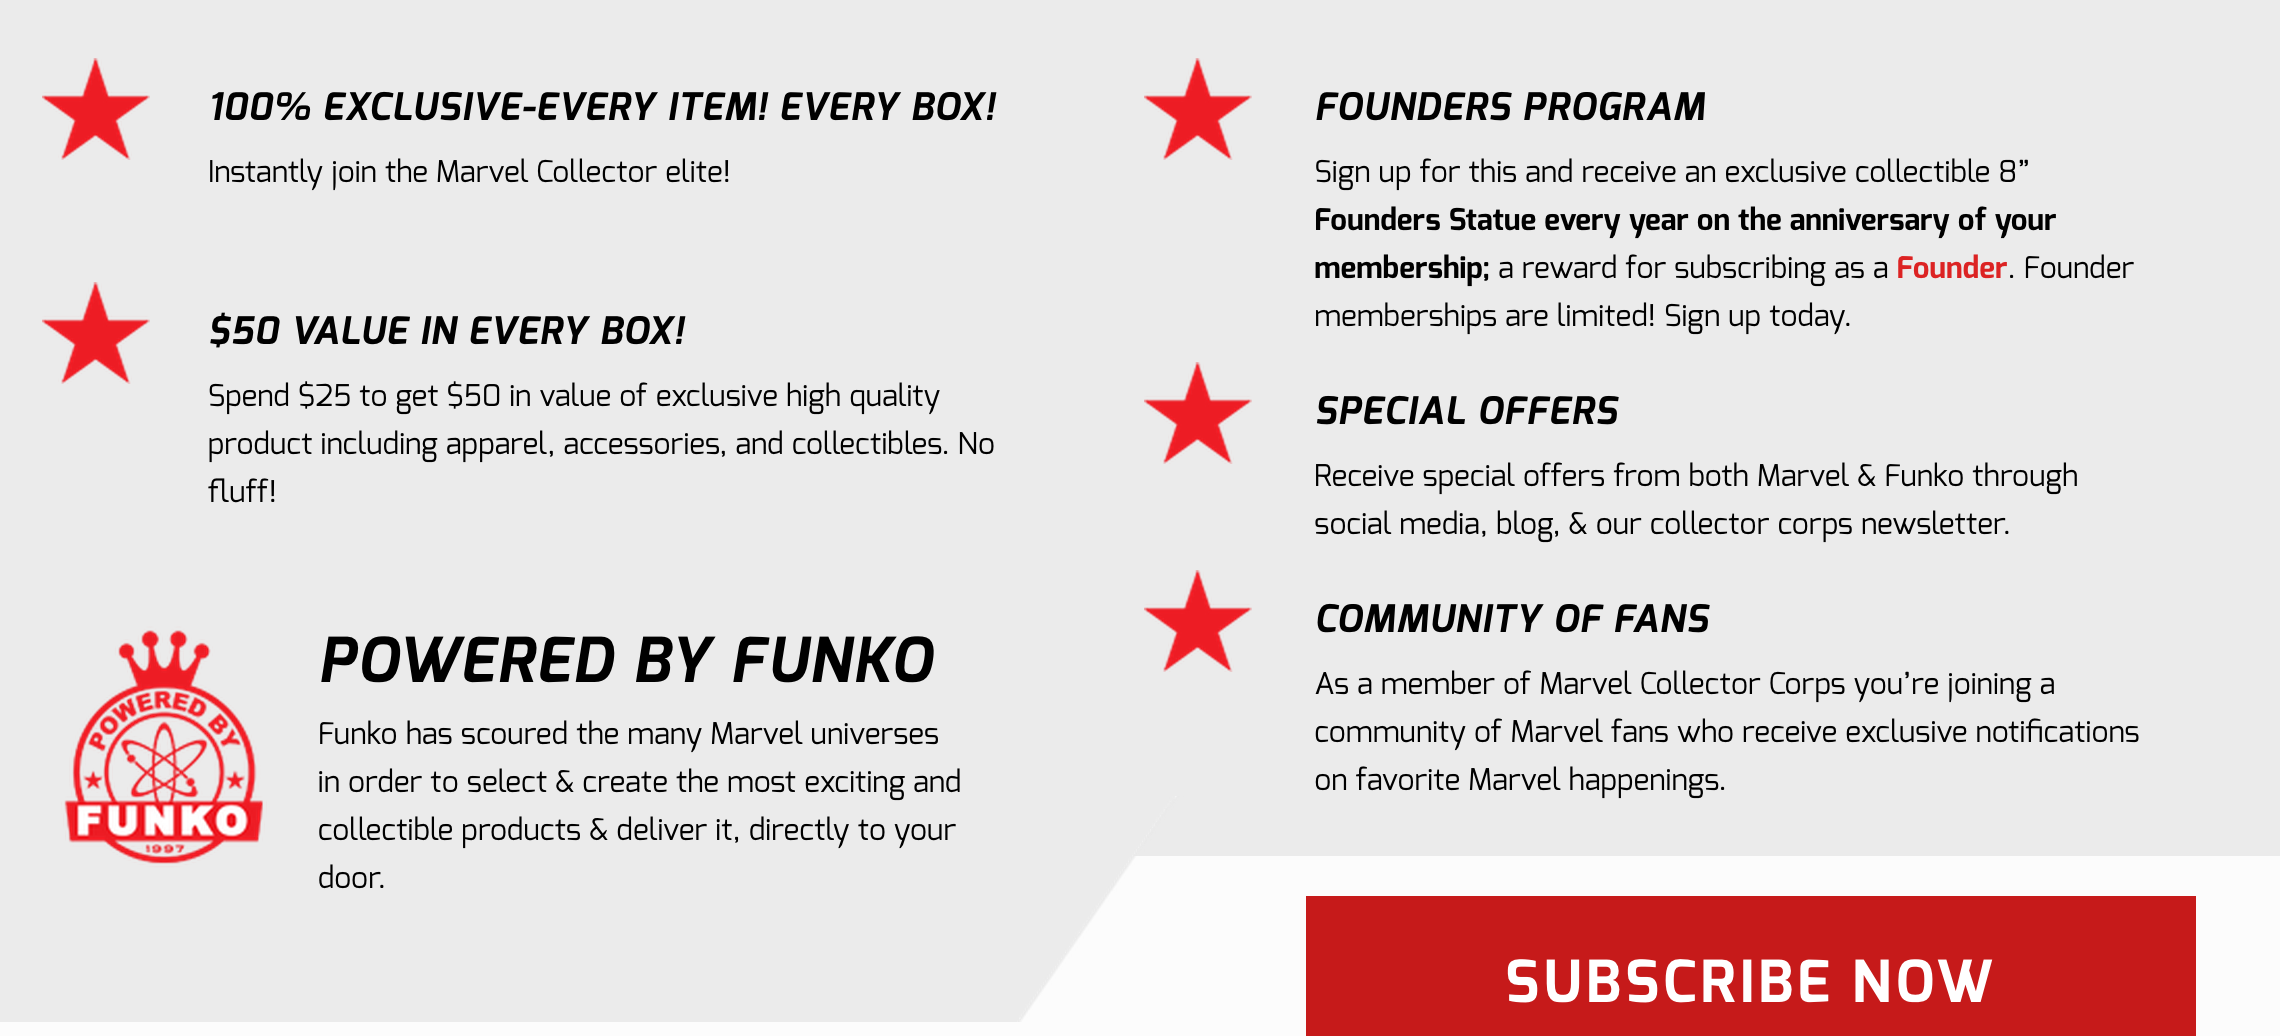 New Subscription Box - Marvel Collector Corps! Details